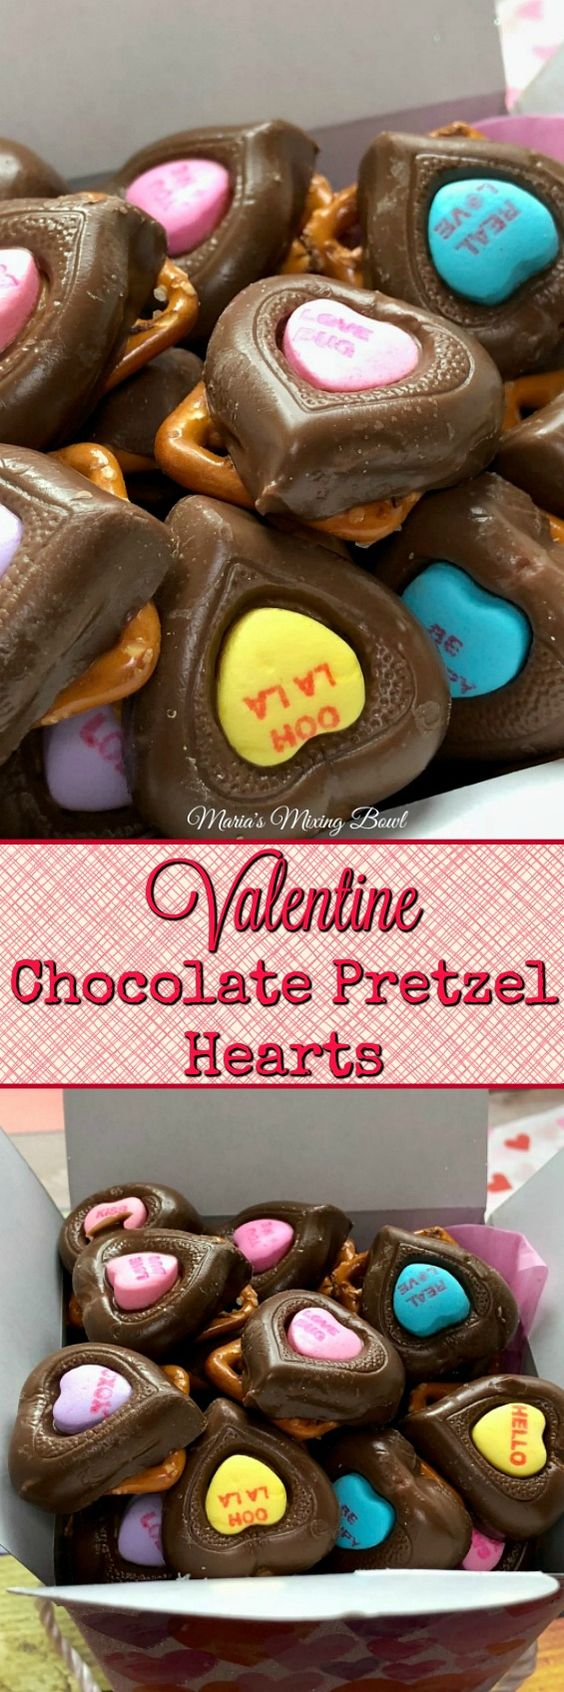 Valentine Chocolate Pretzel Hearts -  Adorable, easy to make with only 3 ingredients and so yummy!  A perfect Valentine treat. Everybody's favorite!